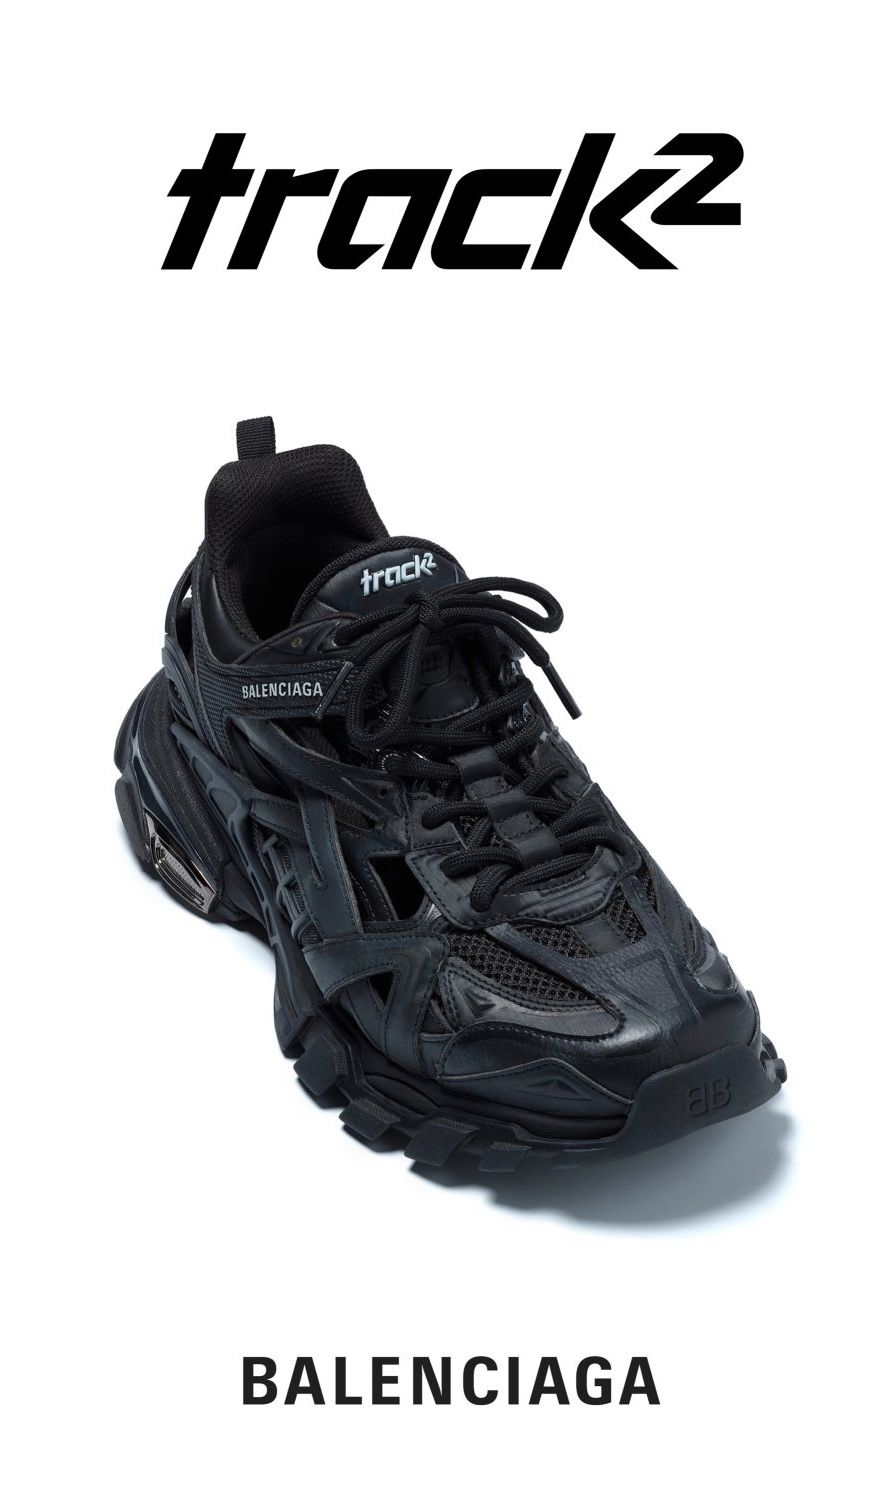 BALENCIAGA SS19 TRACK 2 TRAINERS In Noir Colorway | Sneakers